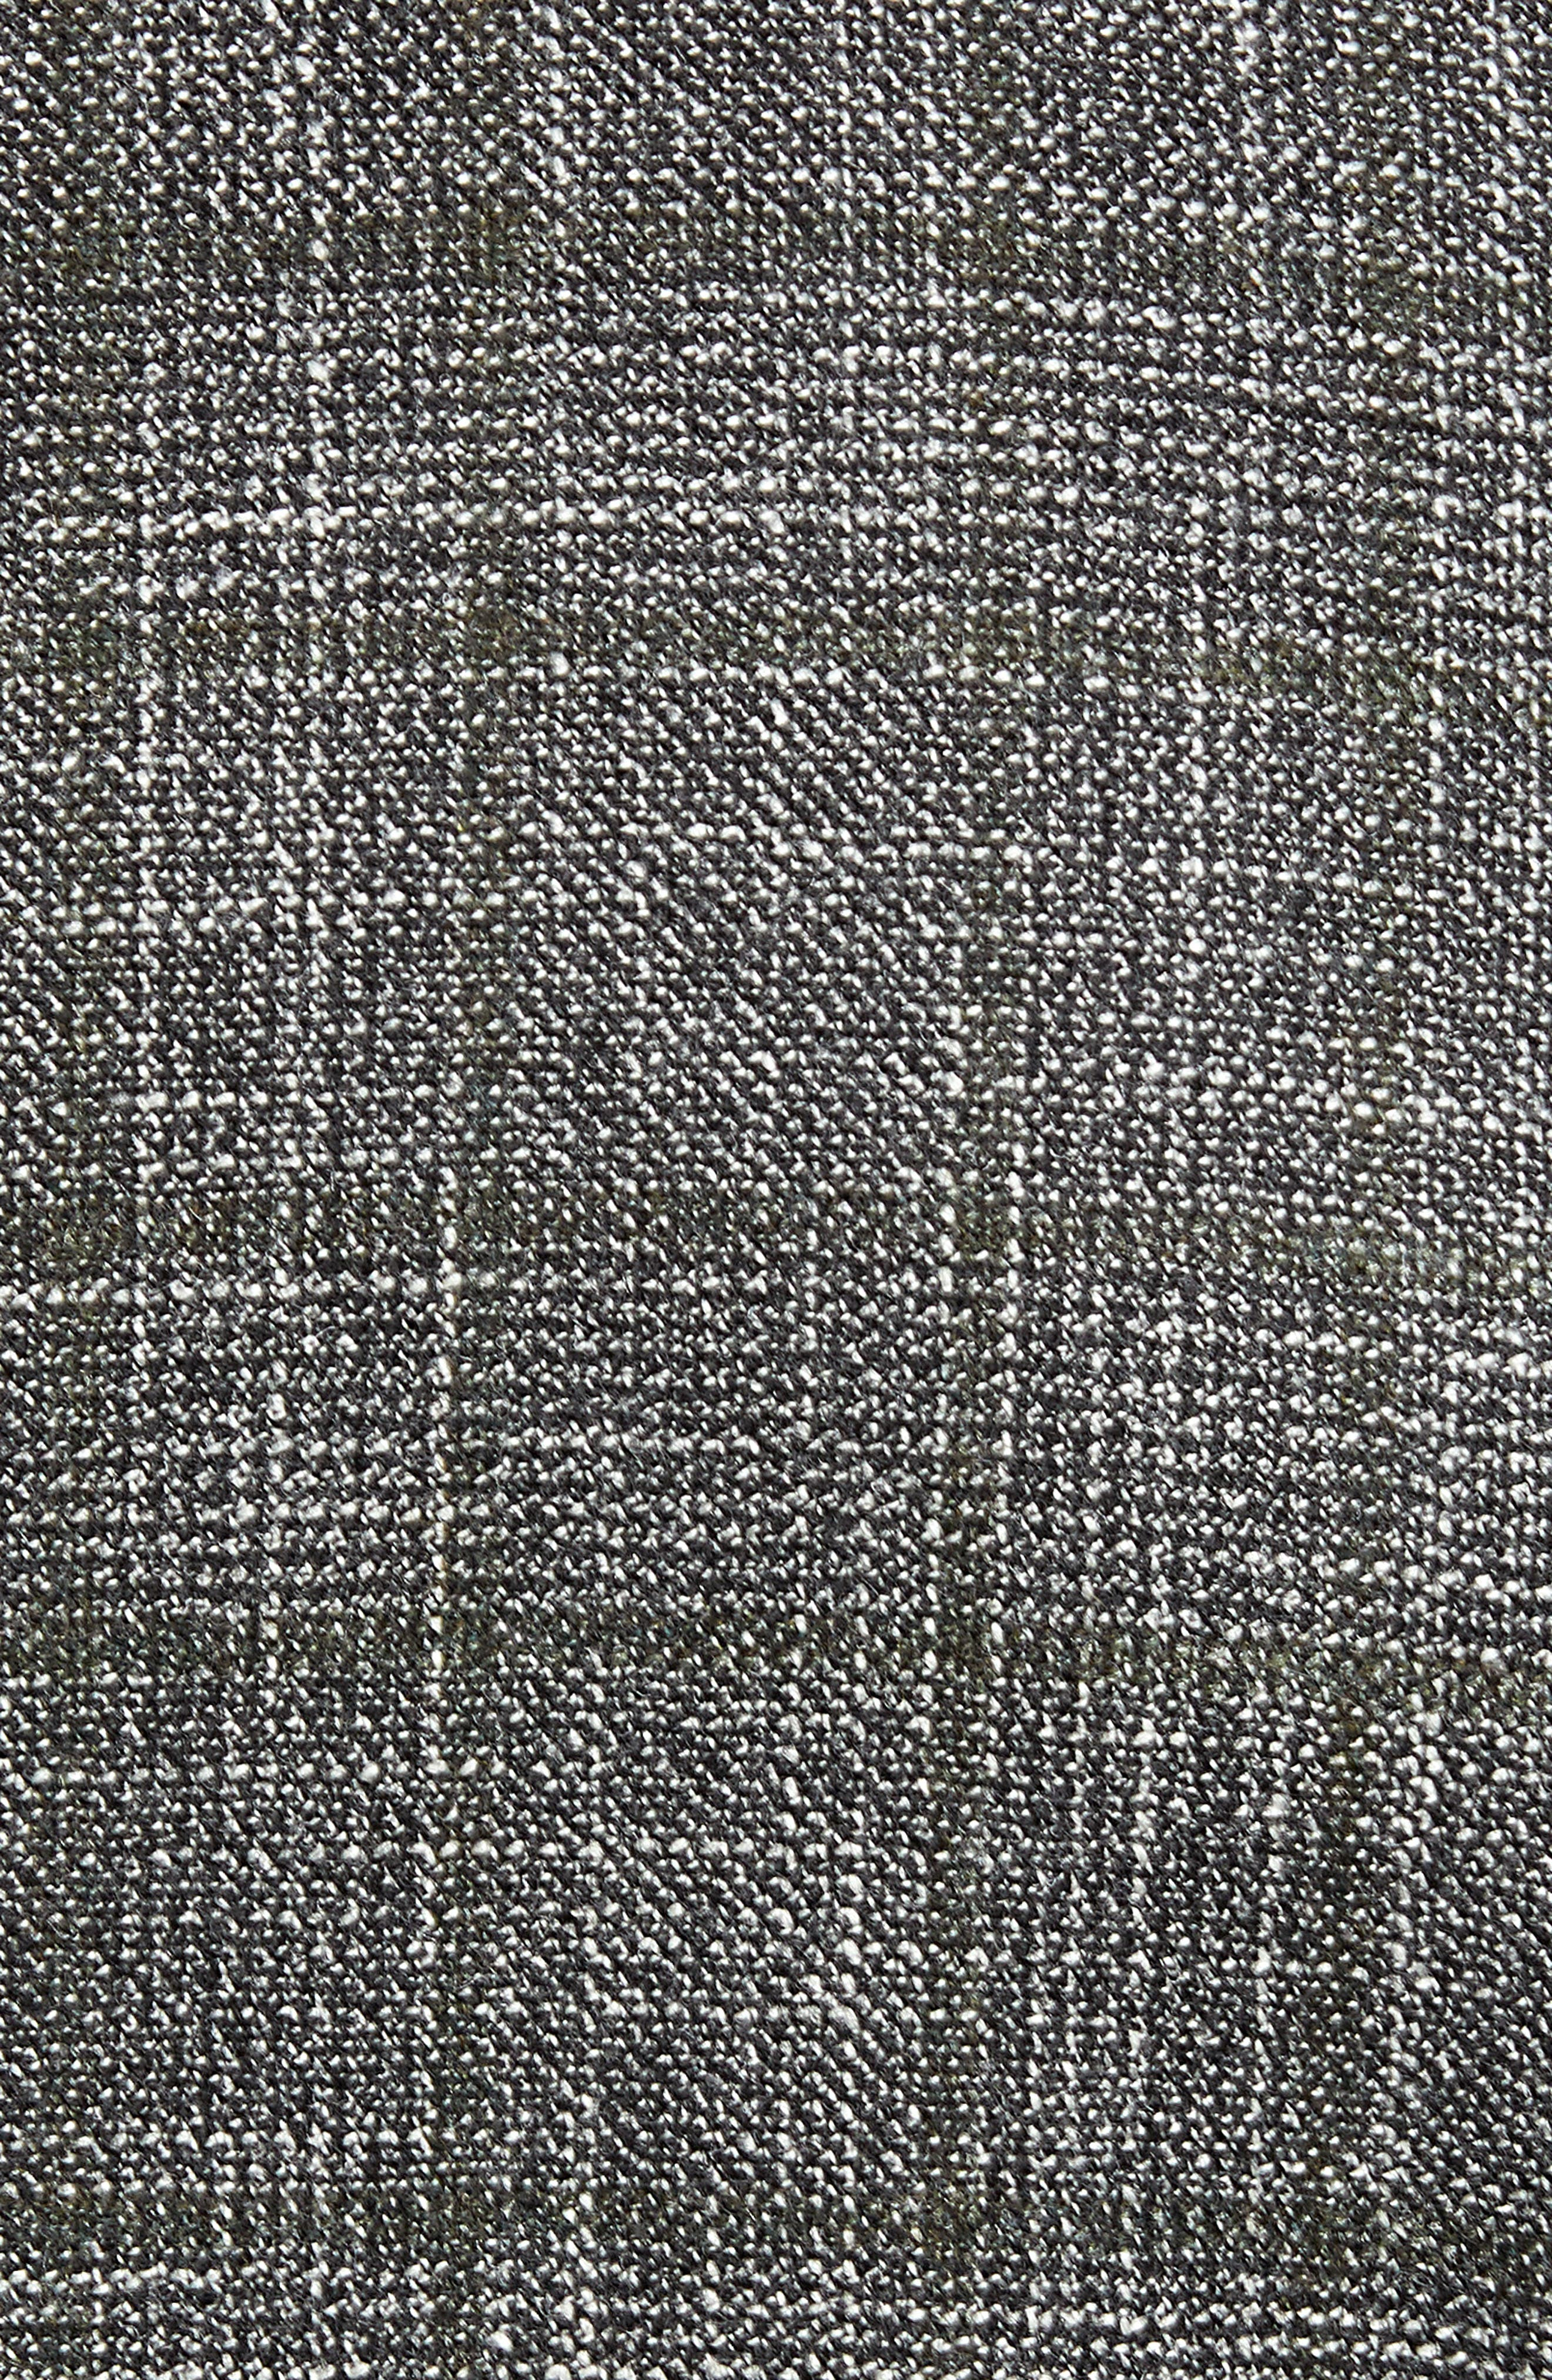 Janson Trim Fit Plaid Wool Blend Sport Coat,                             Alternate thumbnail 6, color,                             061